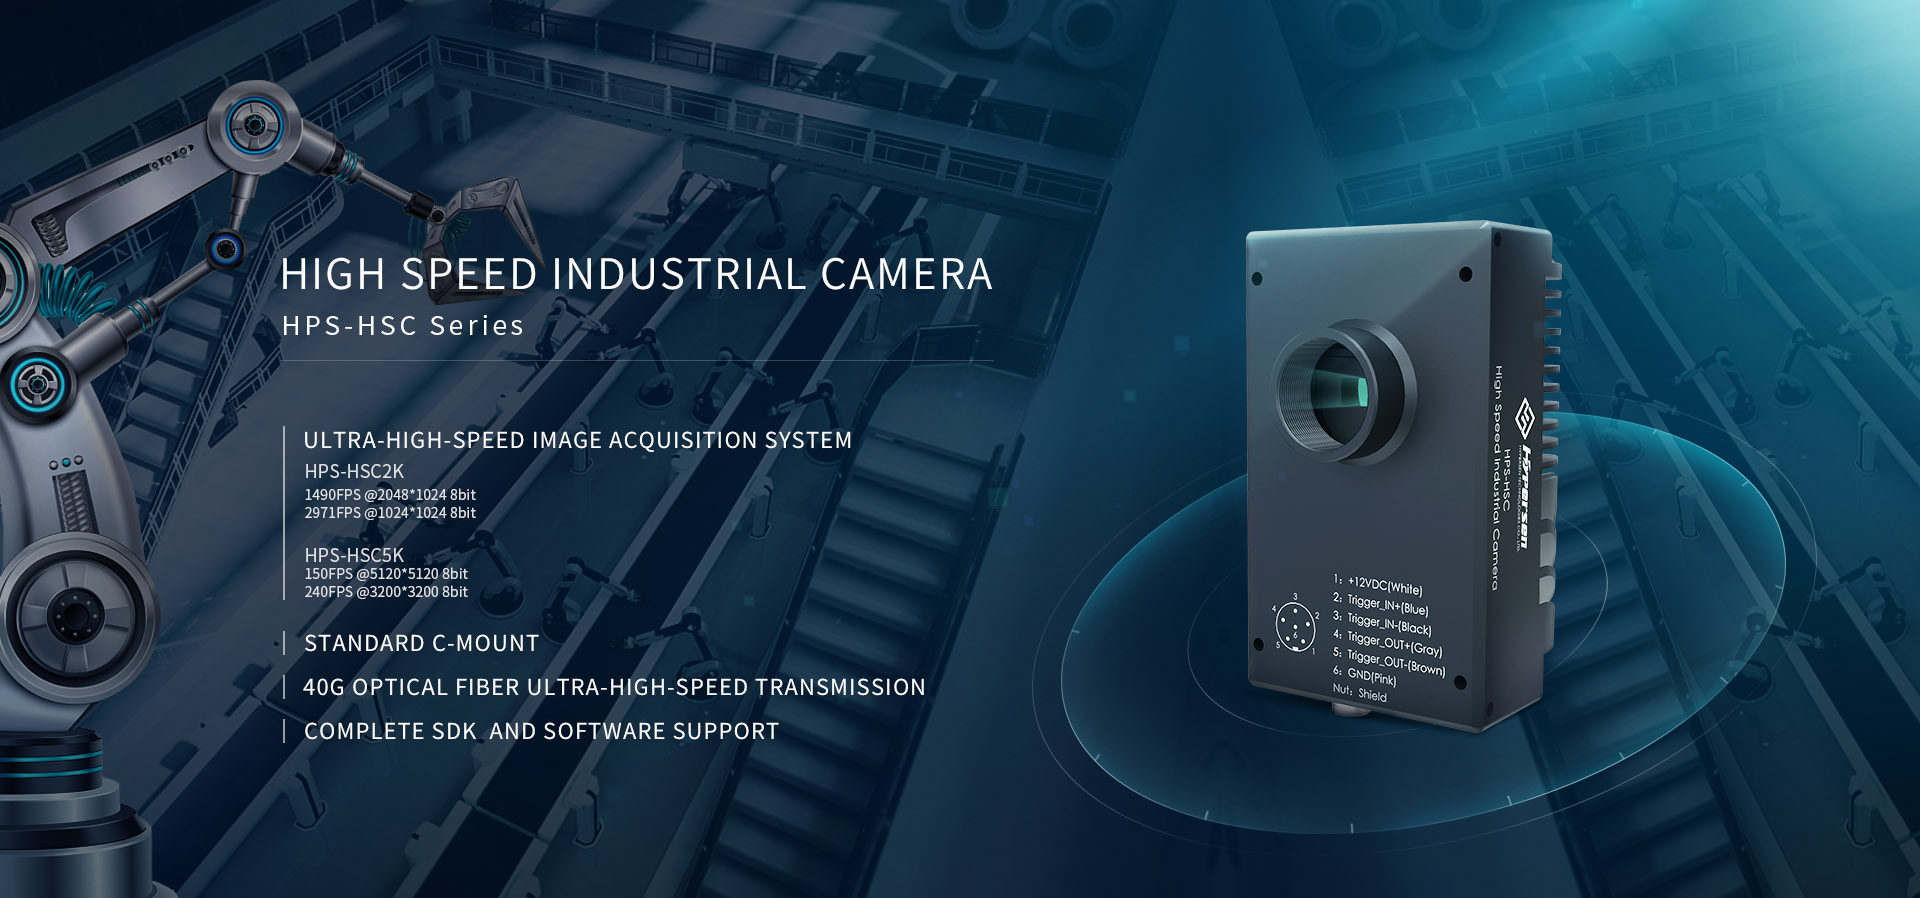 High Speed Industrial Camera